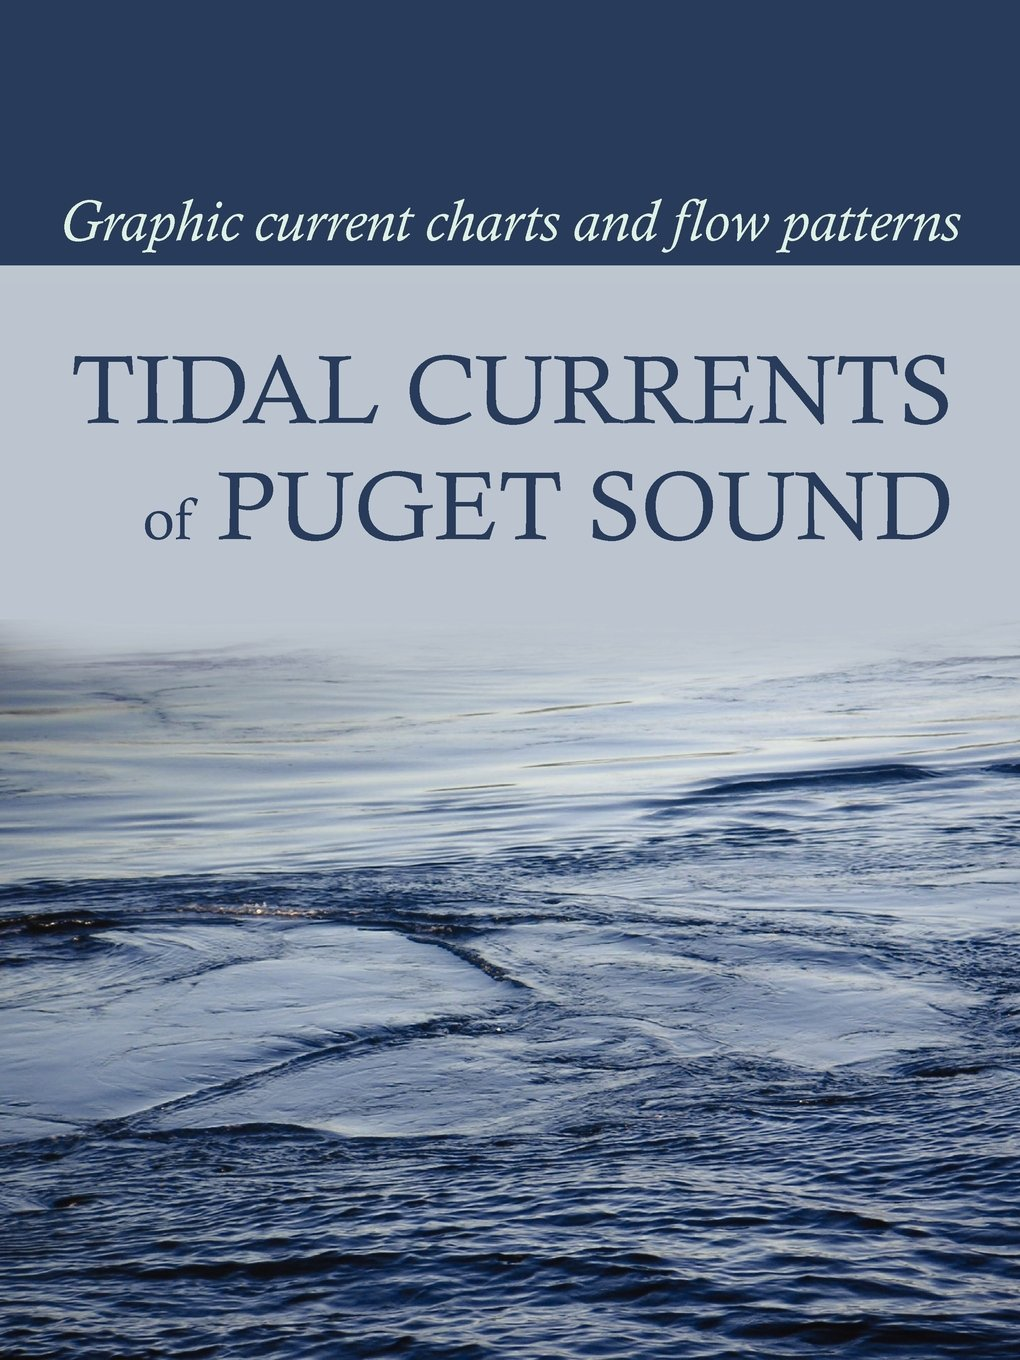 Tidal currents of puget sound graphic current charts and flow tidal currents of puget sound graphic current charts and flow patterns david burch tobias burch 9780914025160 amazon books nvjuhfo Images